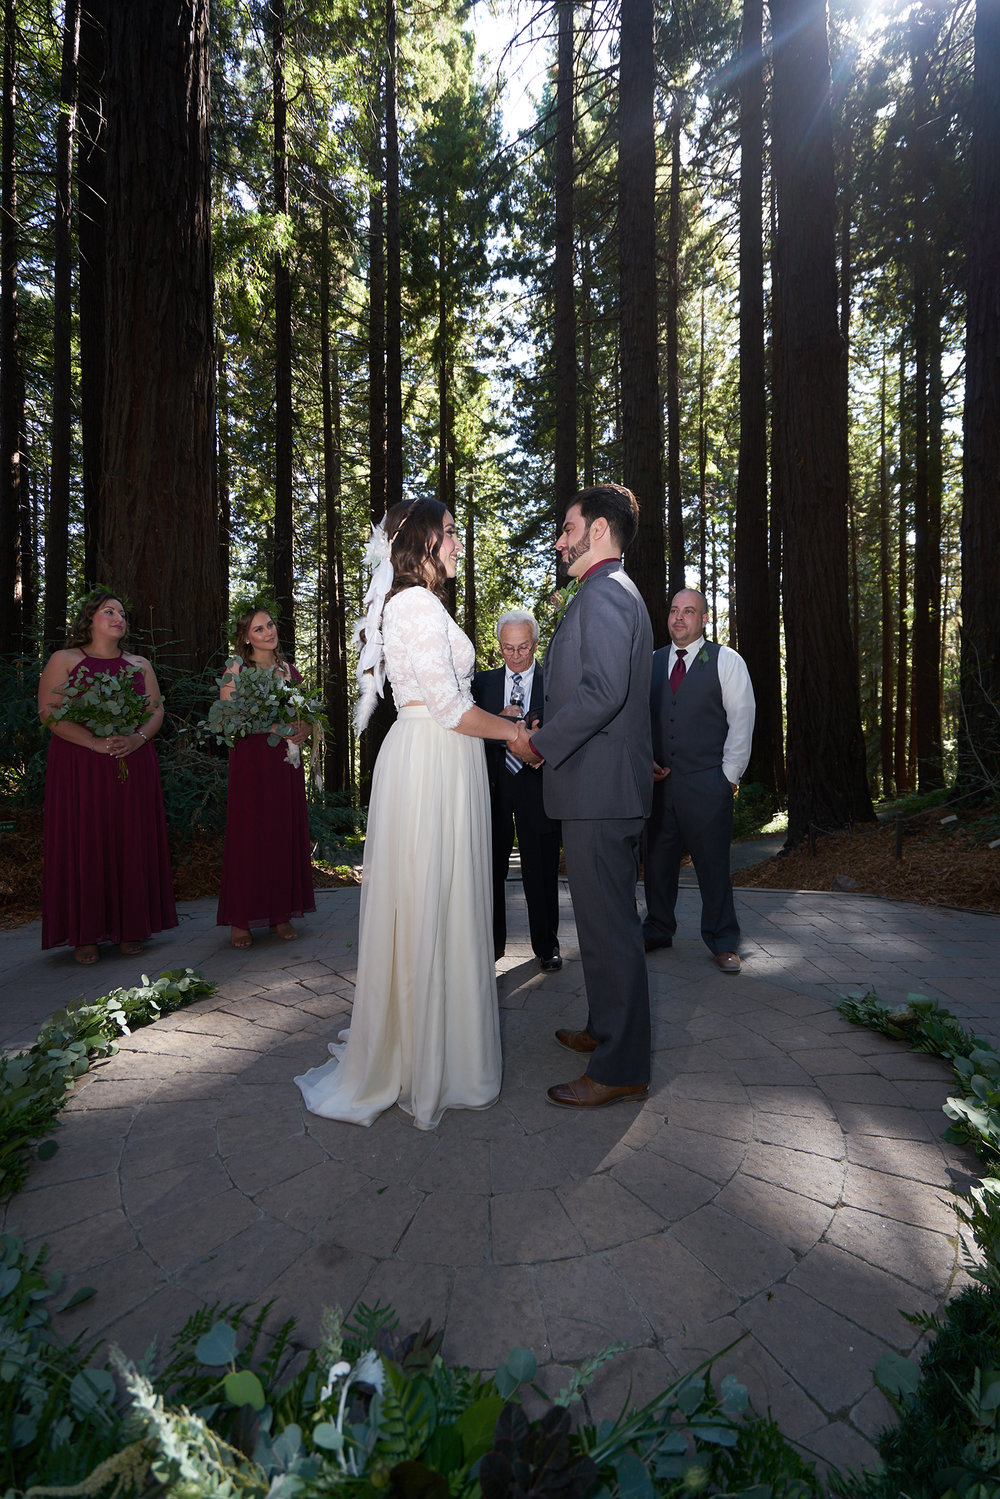 100717_Lenora_Jesse0202-weddingdress-bride-weddingphotography-best-weddingphotographer-bridal-groom-wedding-engagementring-proposal-brides-diamondring-sonyalpha-sony-sonya7rii-sanfrancisco-sf-bayarea-photographer-profoto-berkeley-botanical-garden.jpg